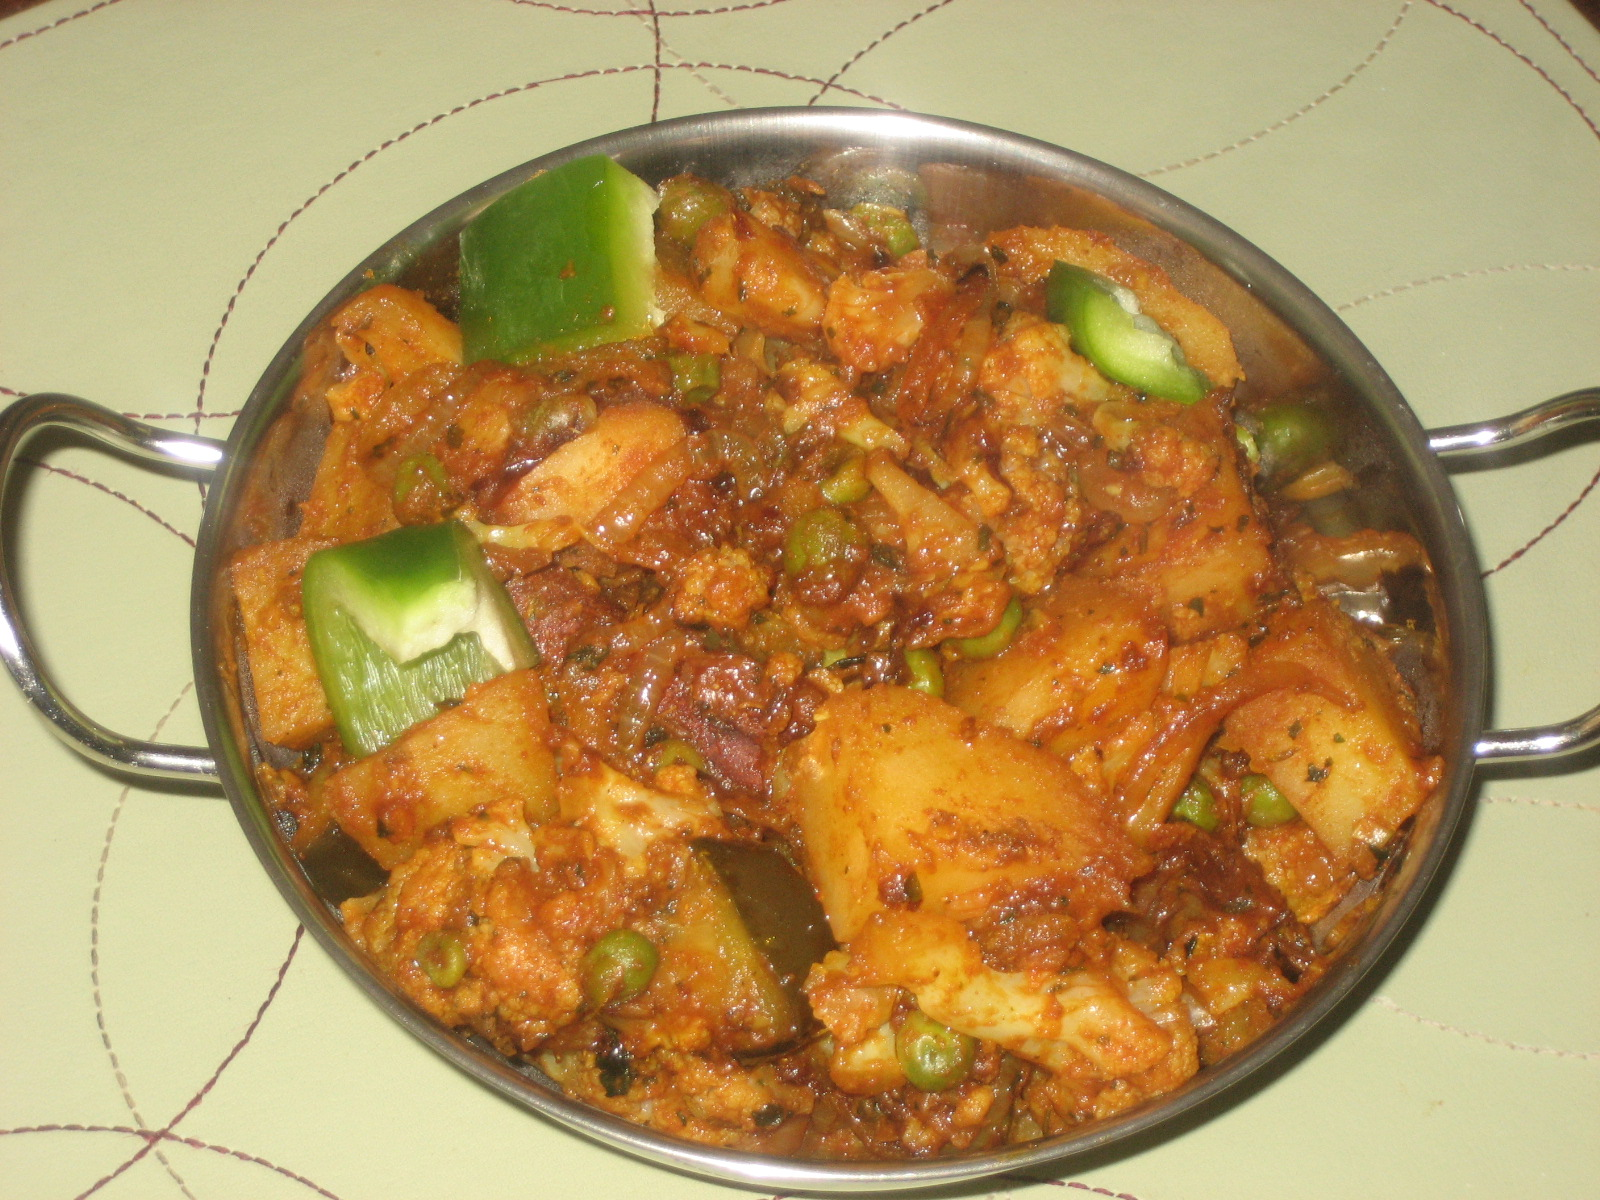 Hot N Steamy Food: Aloo Gobi(Cauliflower Potato Masala)